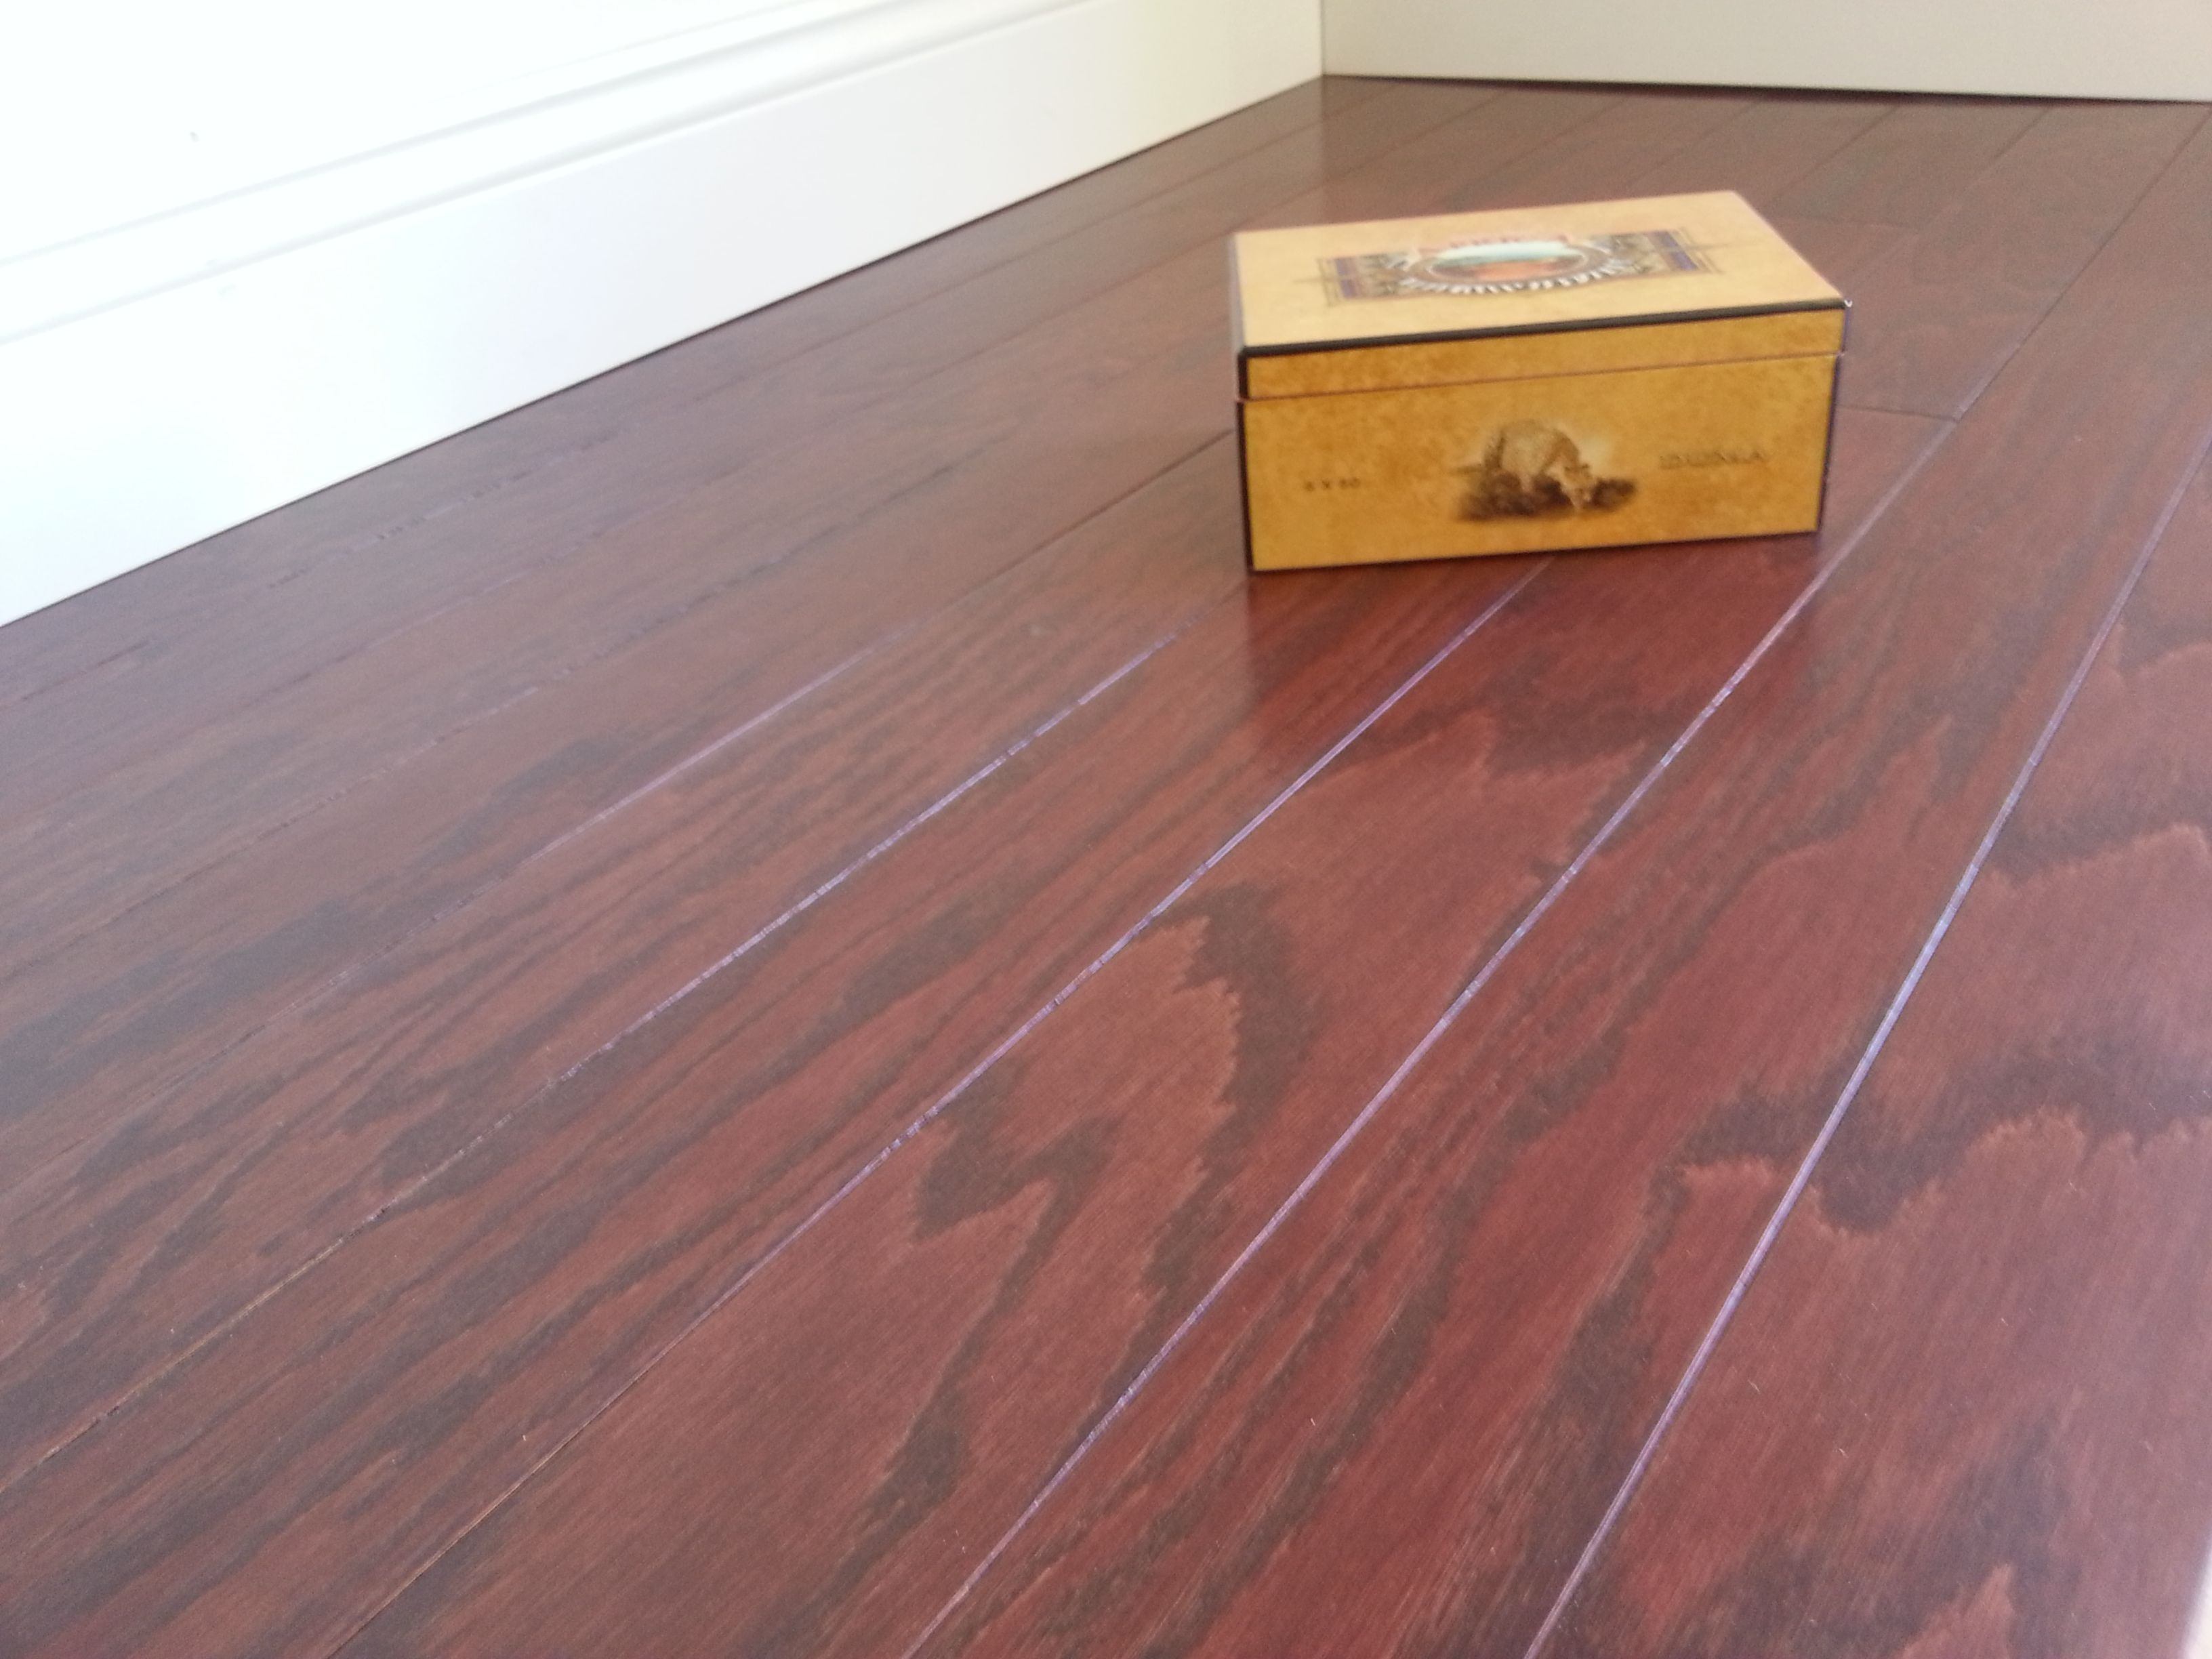 Hr Hardwood Floors Of 3 1 4 Symphonic Engineered Oak Merlot Hardwood Flooring as Low as Pertaining to 3 1 4 Symphonic Engineered Oak Merlot Hardwood Flooring as Low as 3 23 Sf